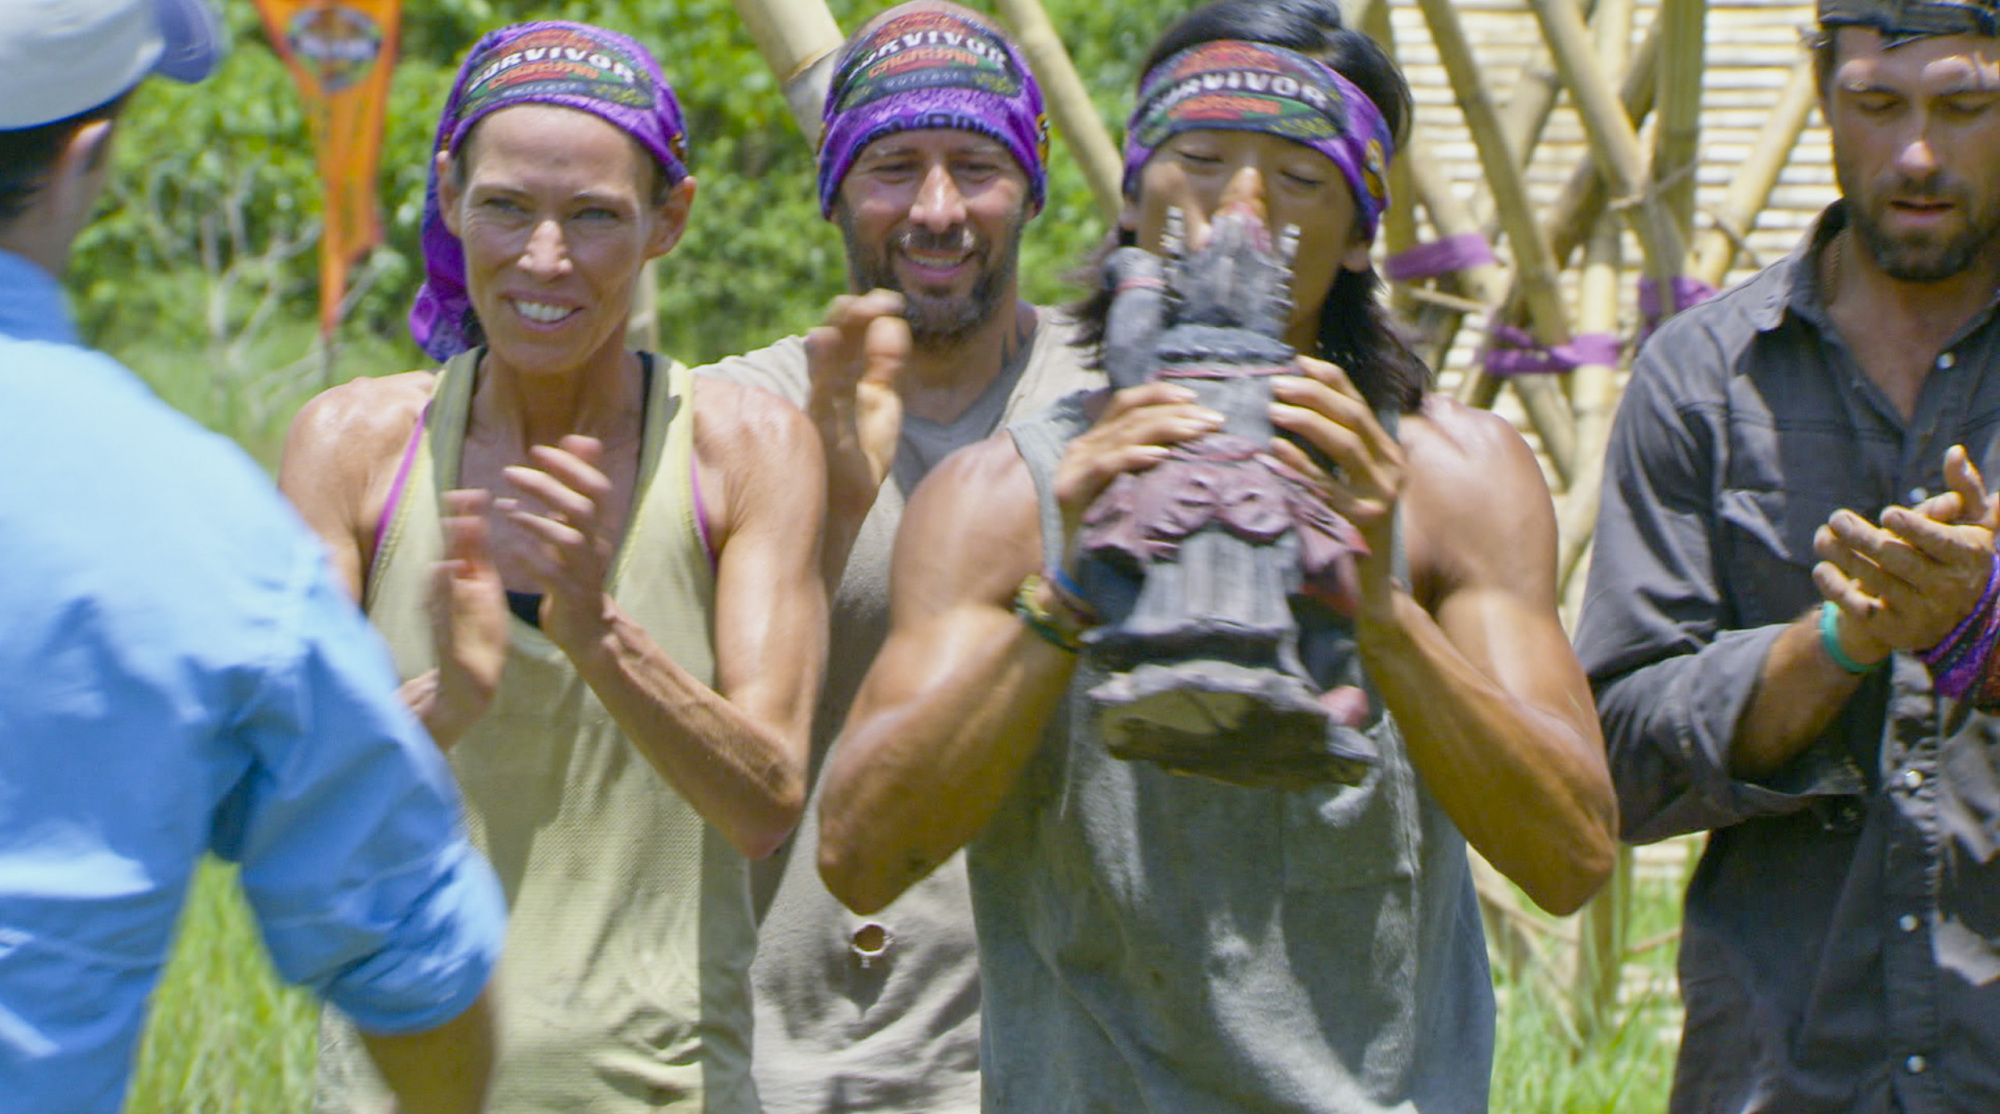 Immunity win in Season 28 Episode 5